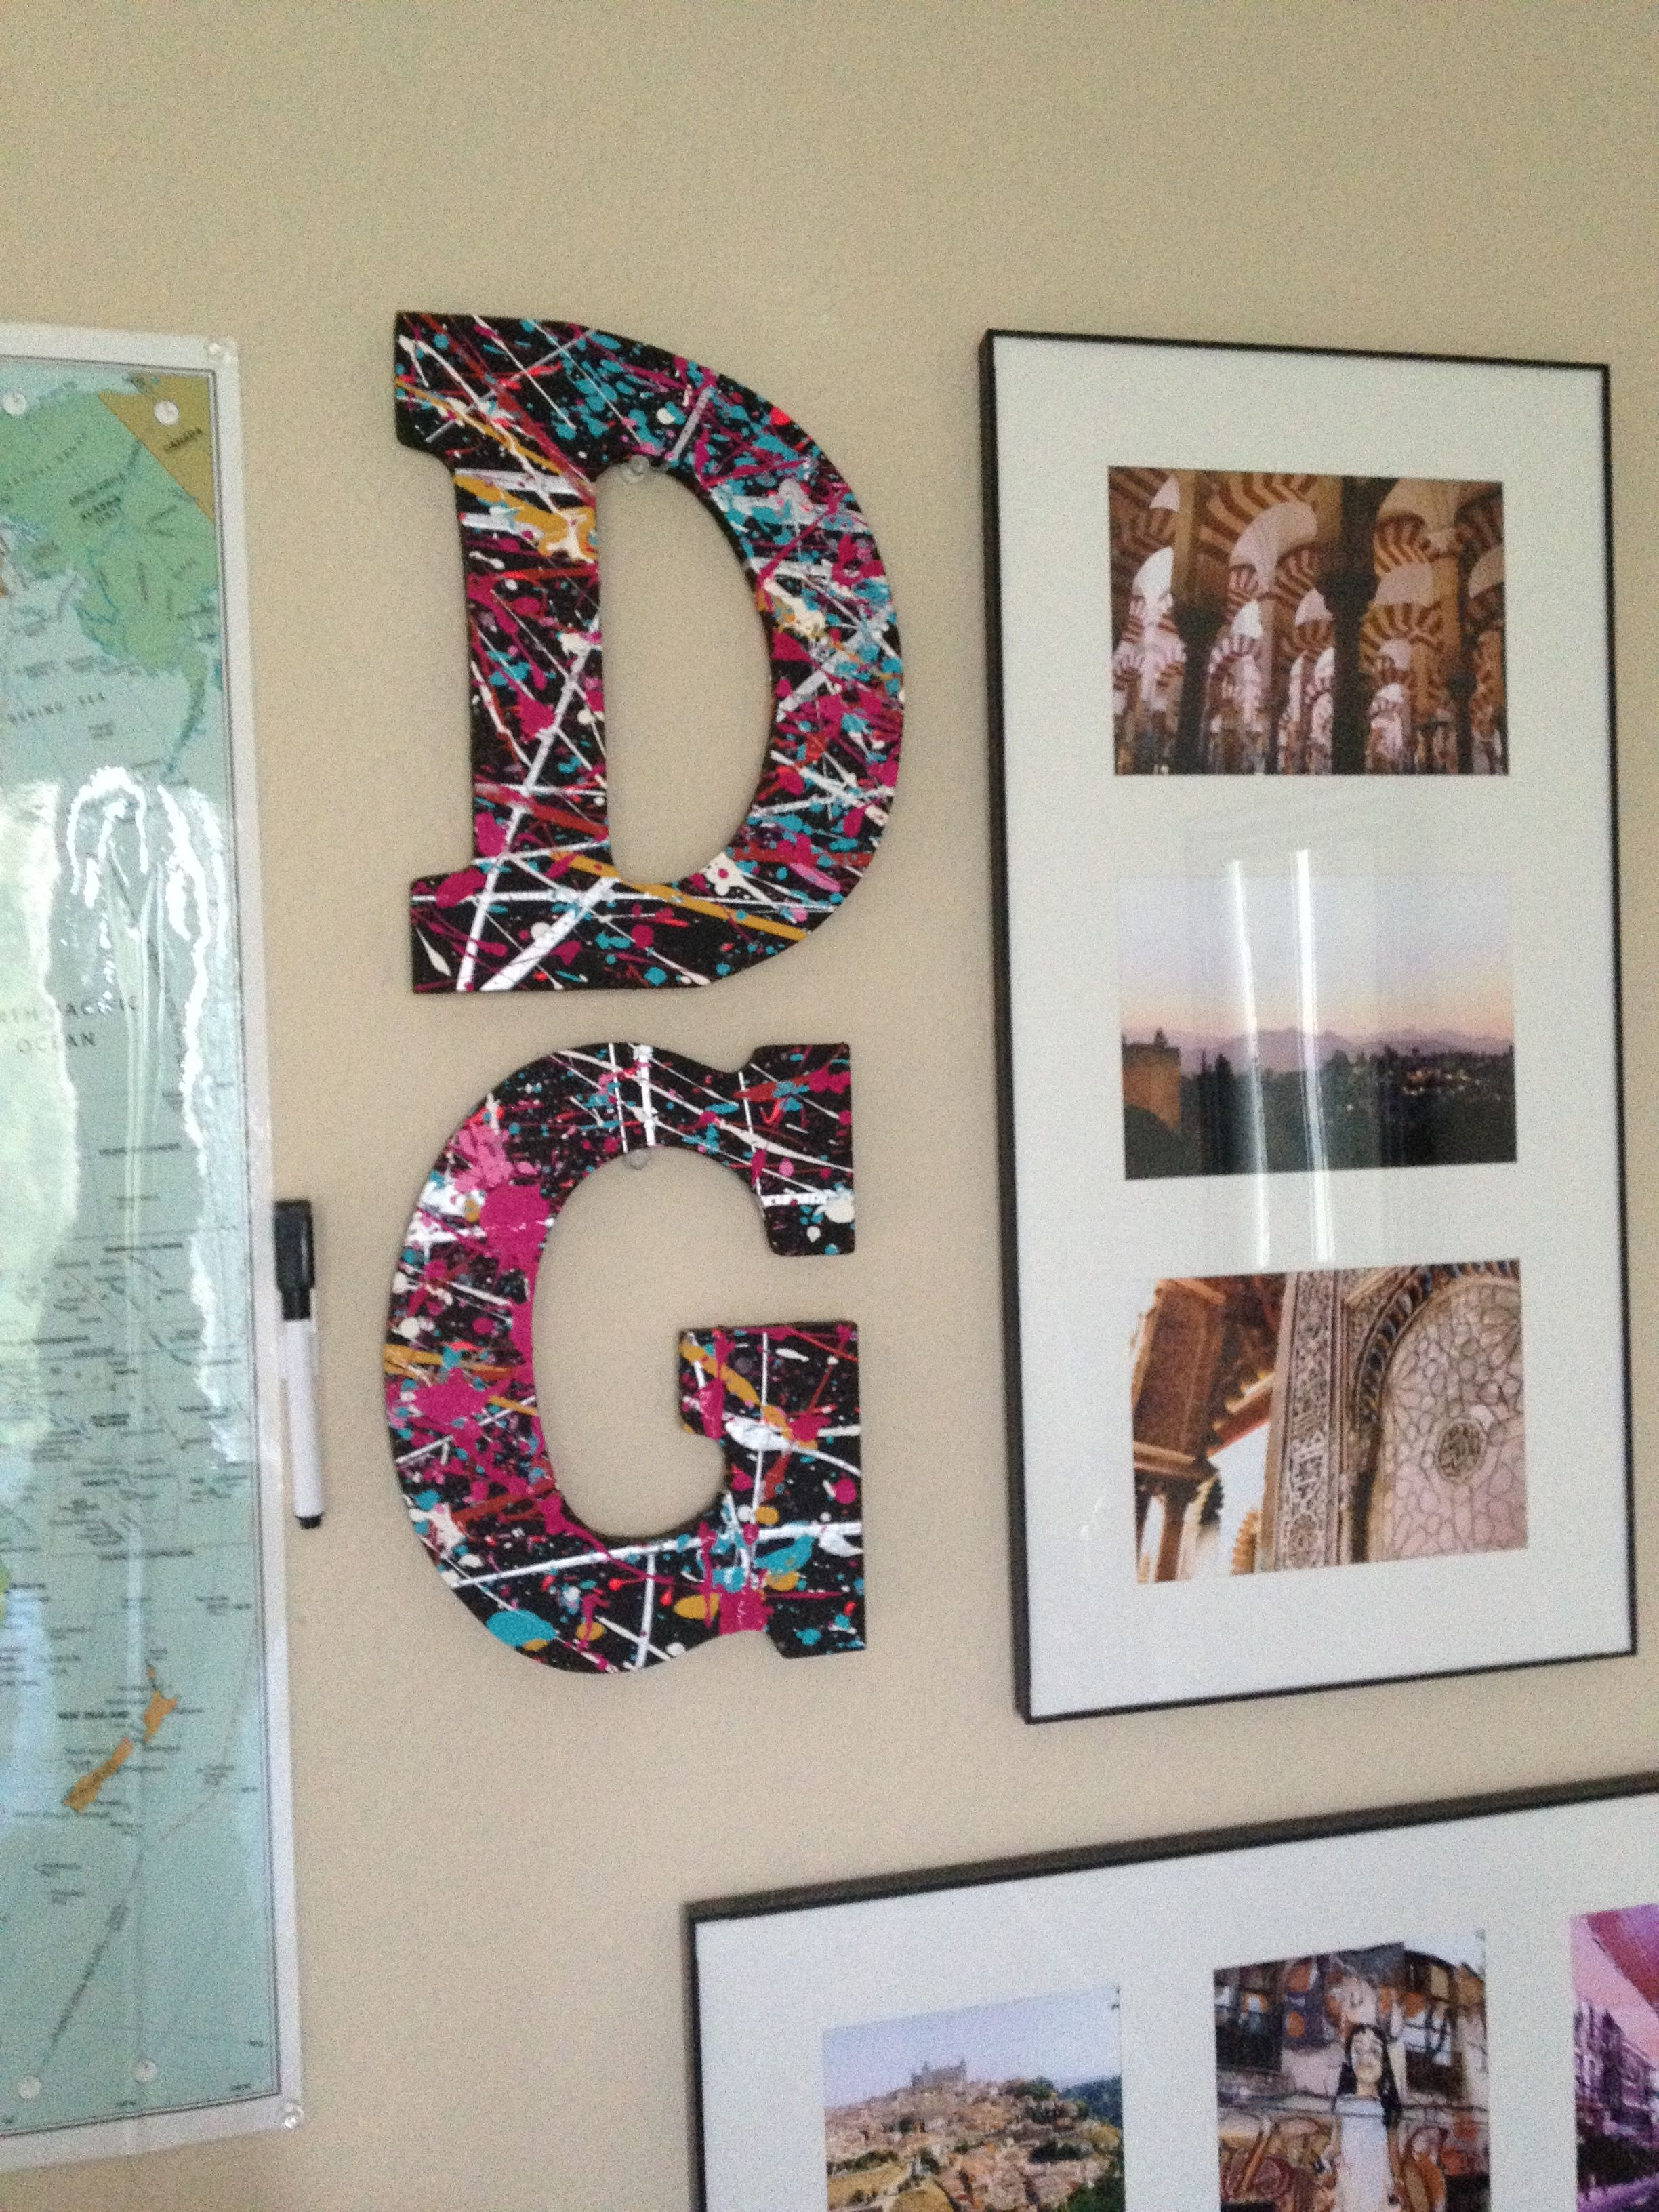 Buy Letters For Wall Entrancing This Would Be Fun Buy Those Wooden Letters At Joann's Then Paint Inspiration